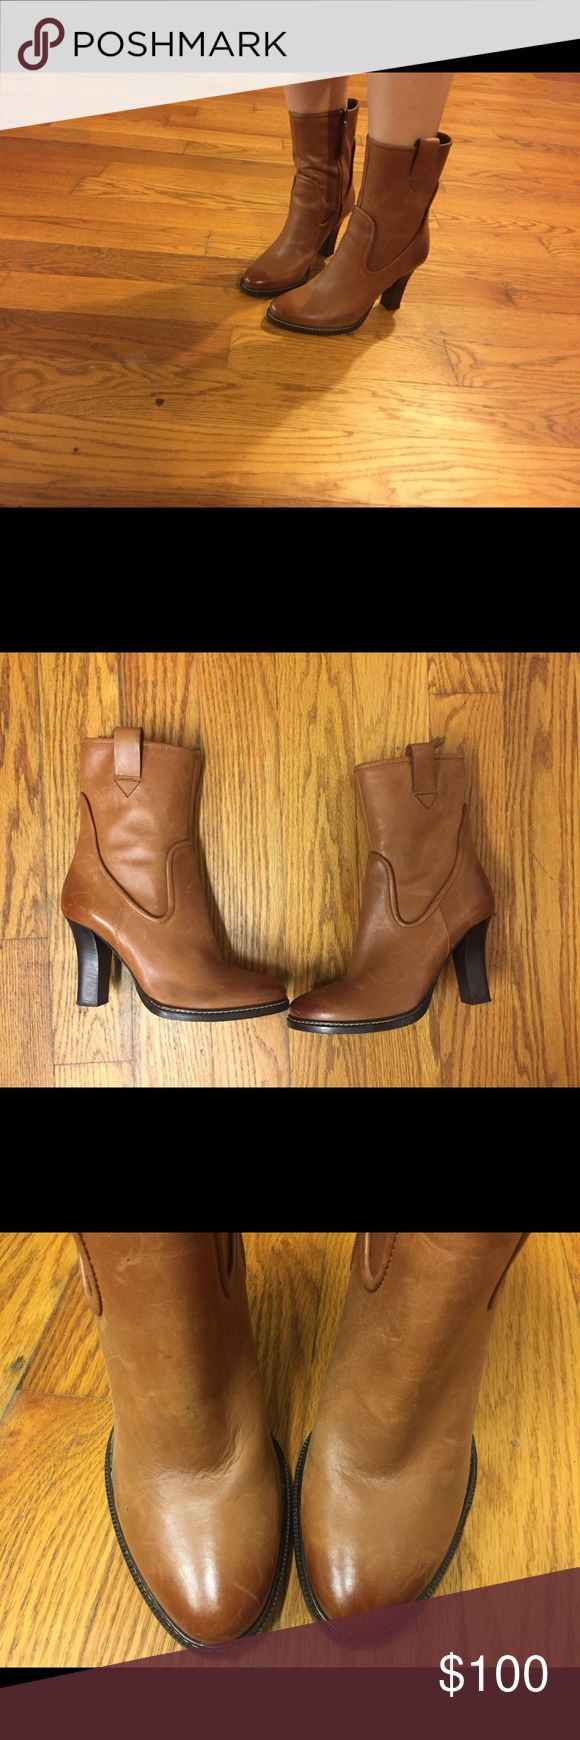 Hugo Boss Orange Leather Booties Hugo Boss Orange Leather Booties Made in Italy. Using them briefly once or twice. BOSS ORANGE Shoes Ankle Boots & Booties